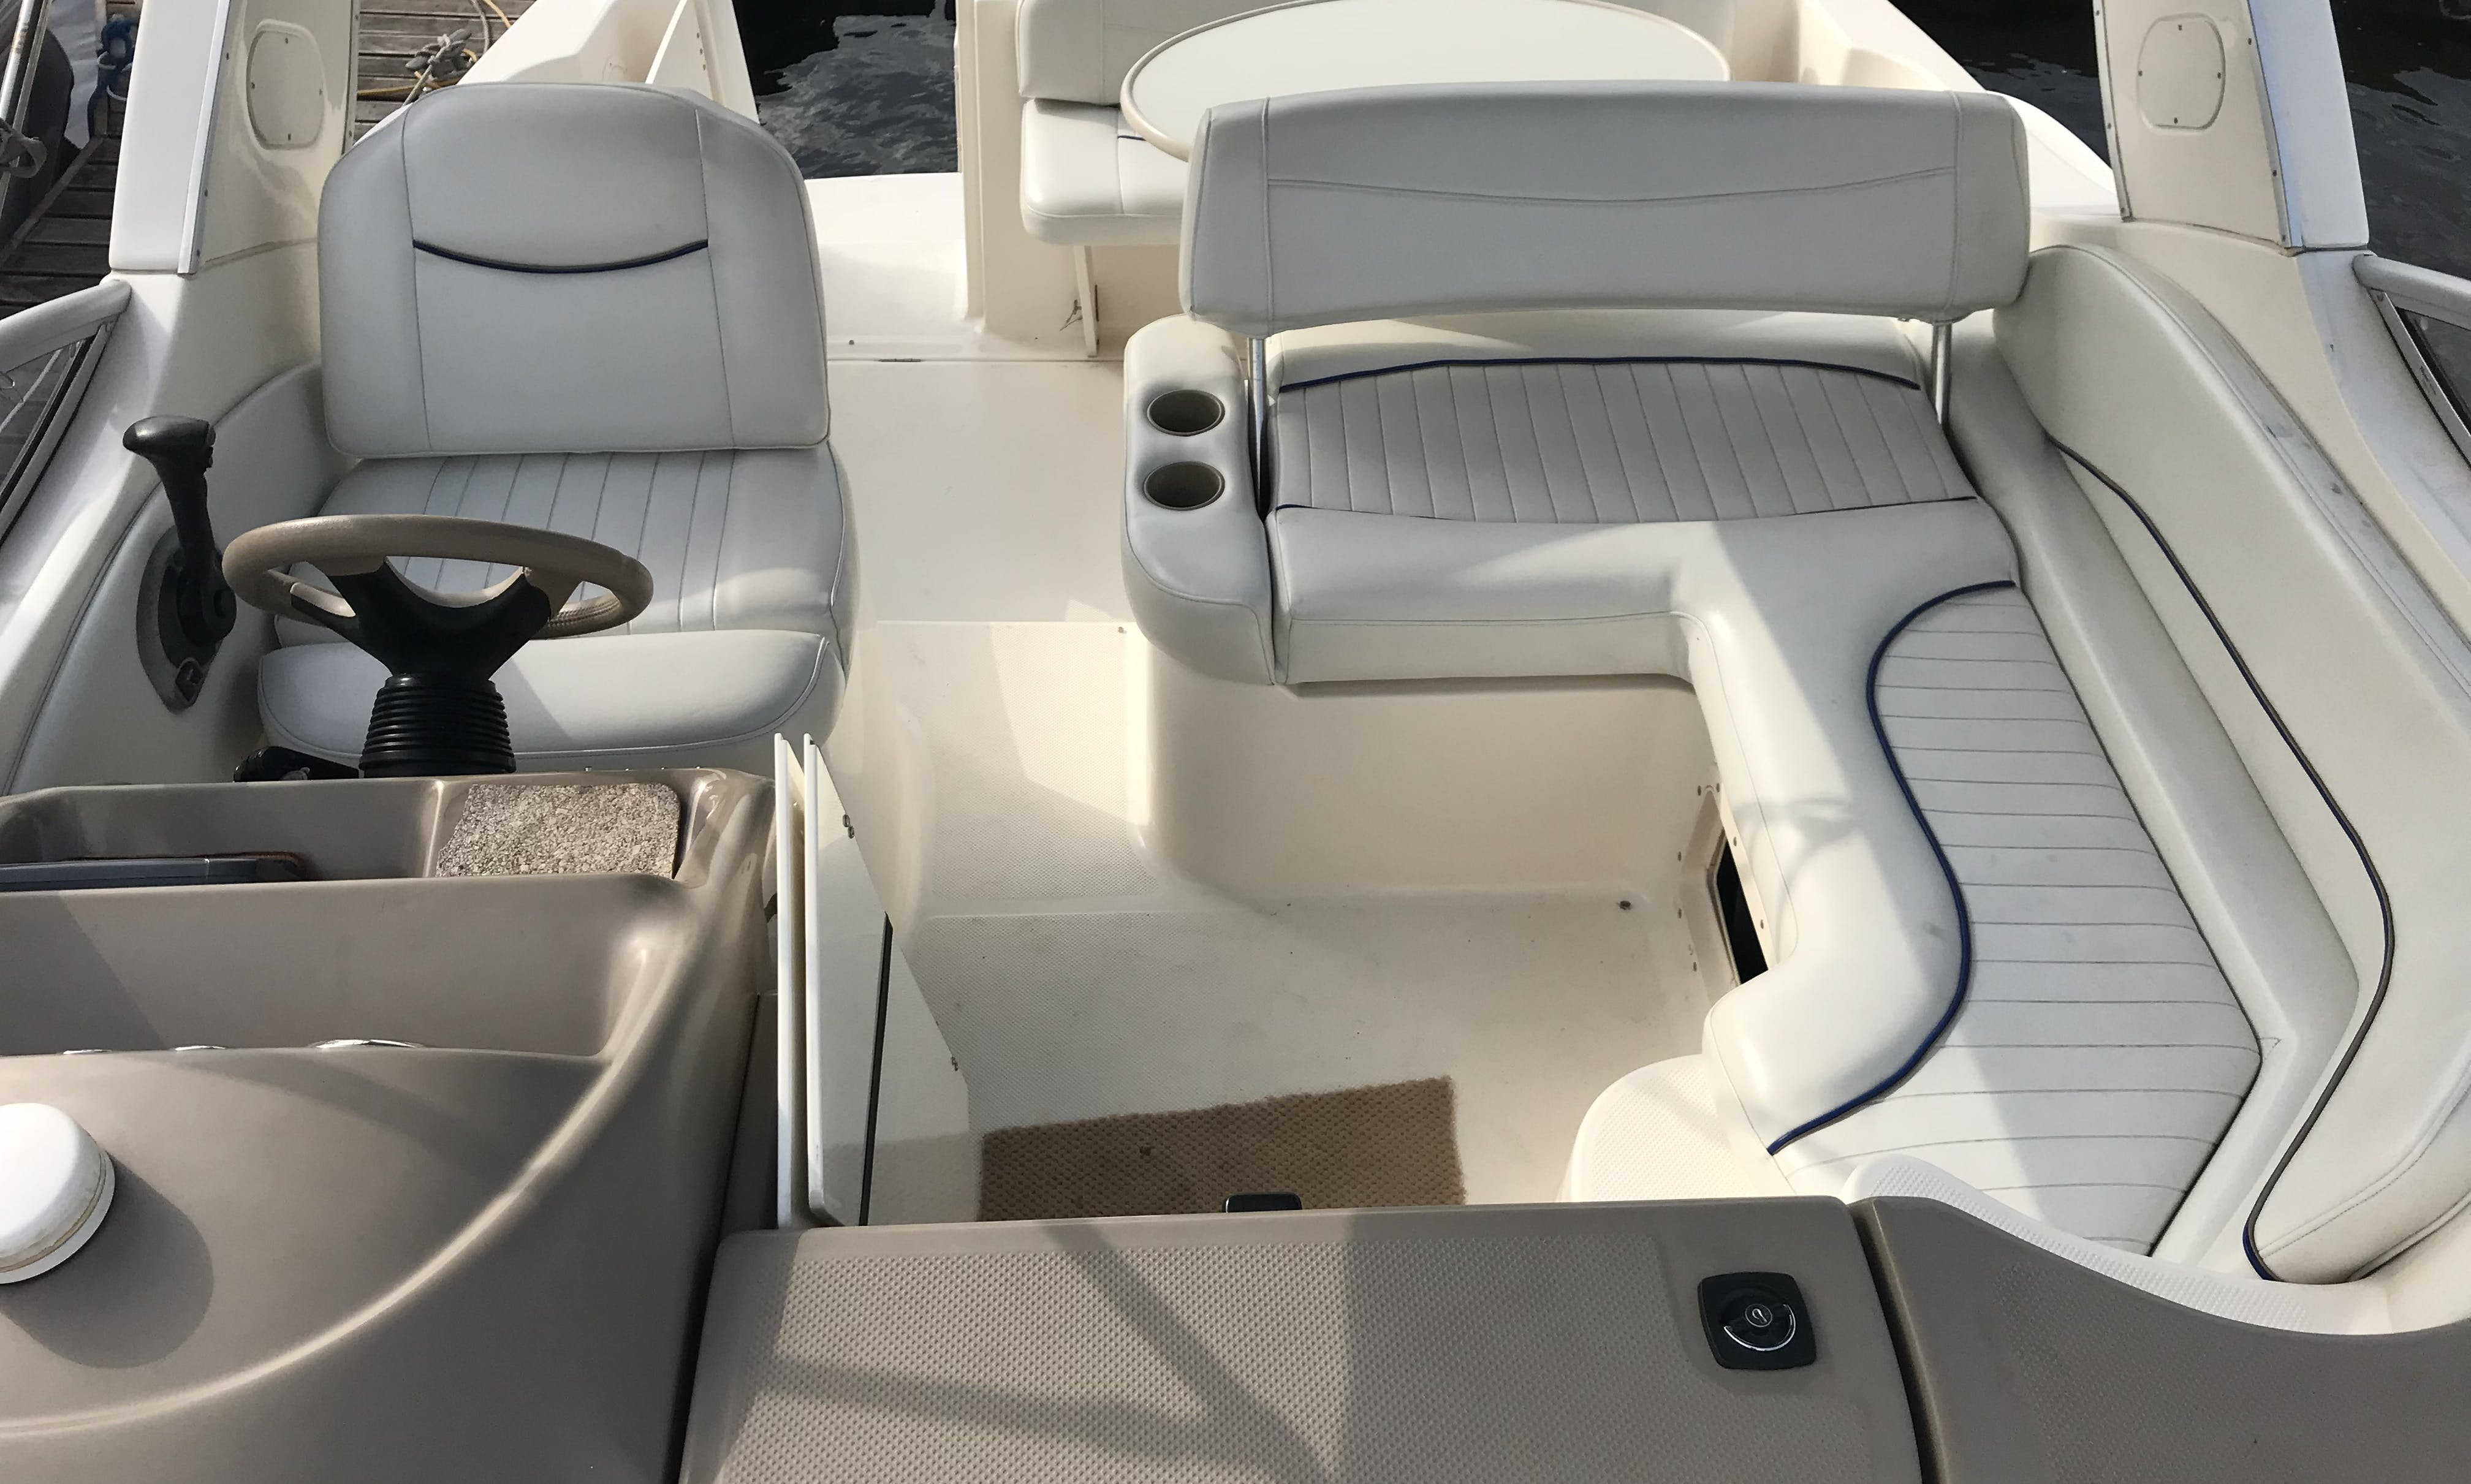 Motor Yacht rental in Kyiv